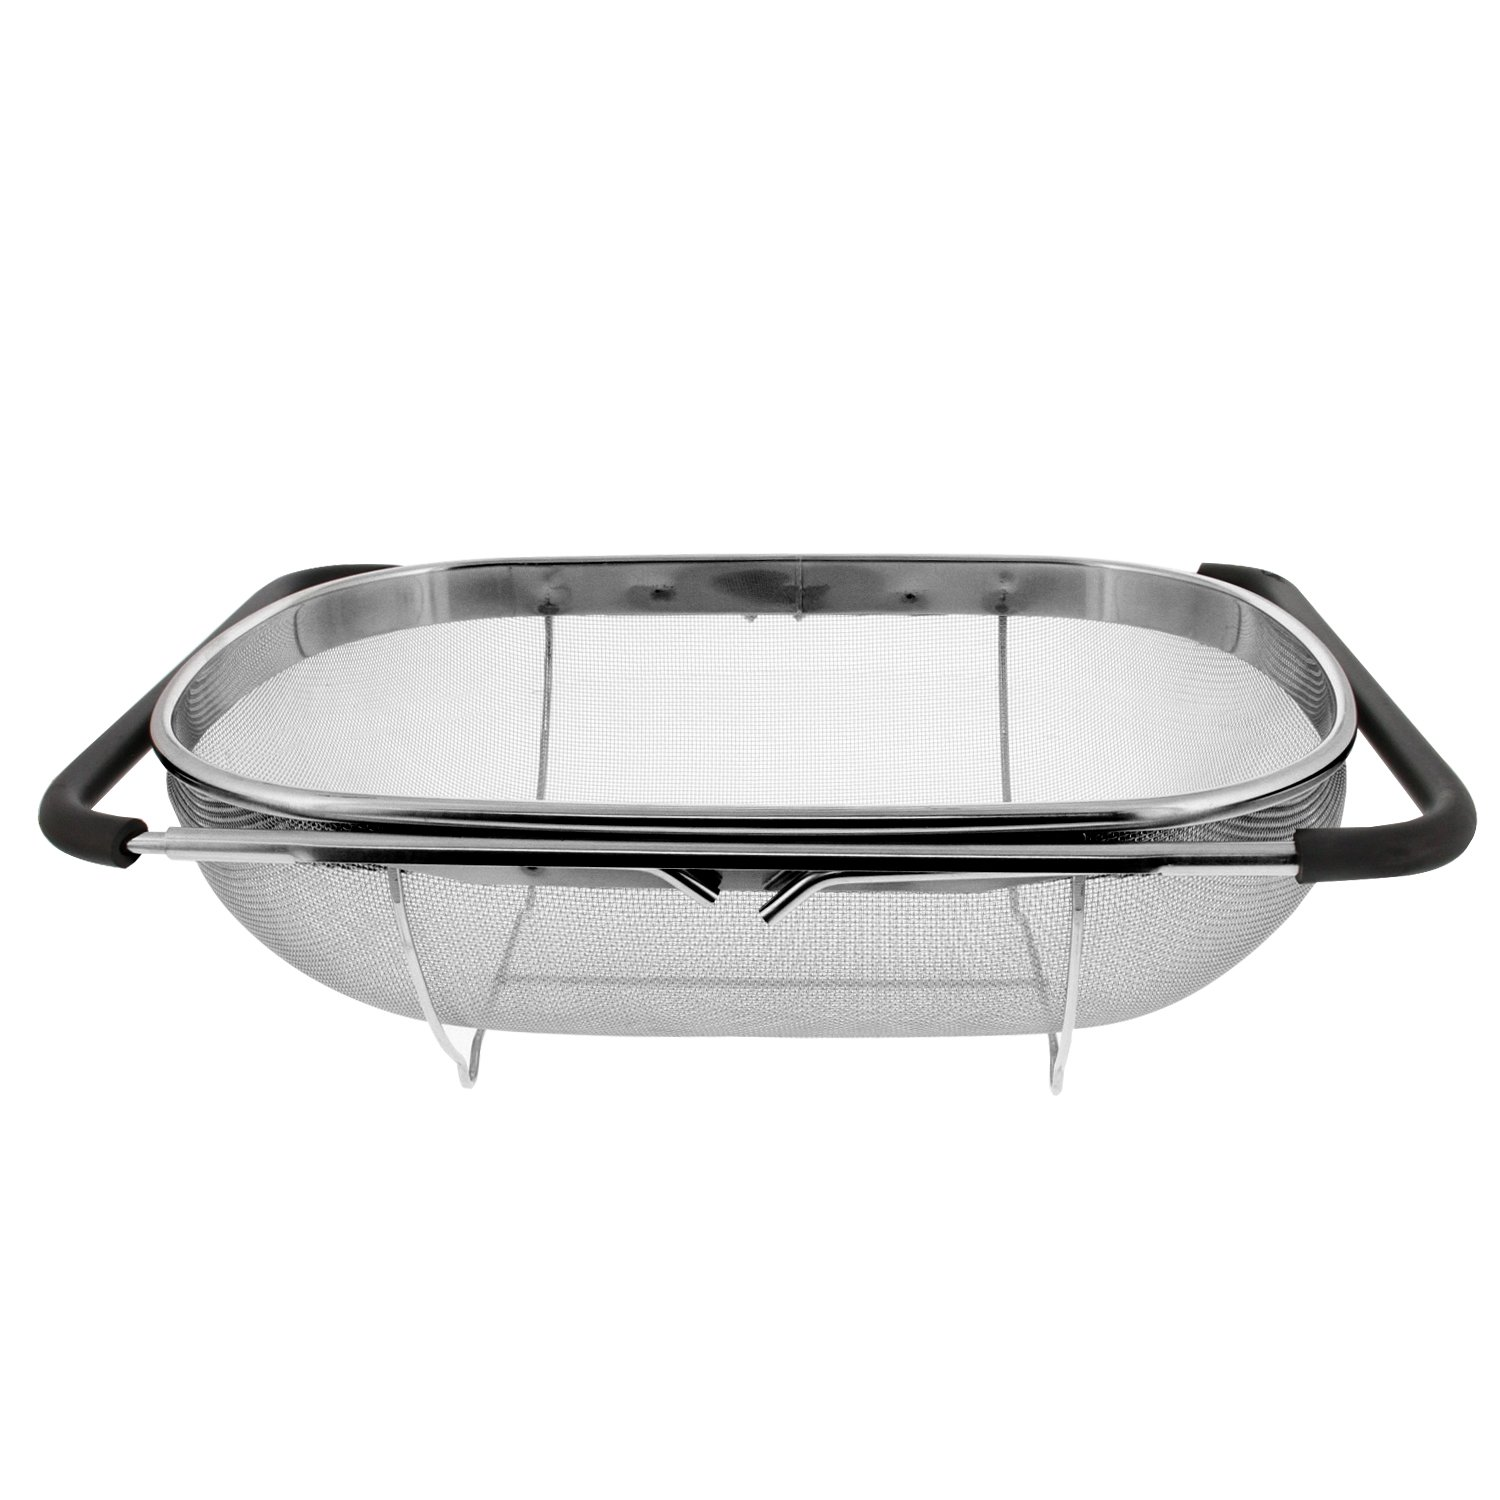 U.S. Kitchen Supply - Premium Quality Over The Sink Stainless Steel Oval Colander with Fine Mesh 6 Quart Strainer Basket & Expandable Rubber Grip Handles - Strain, Drain, Rinse Fruits, Vegetables by U.S. Kitchen Supply